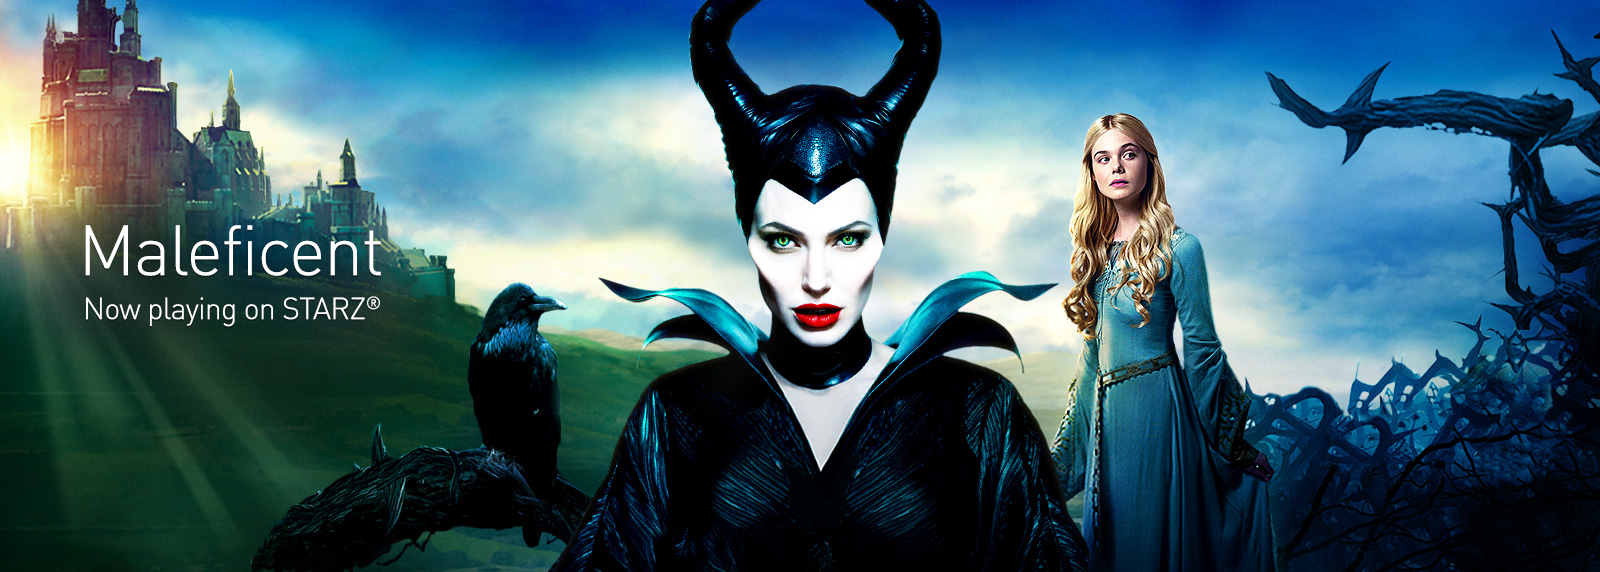 DIRECTV Maleficent